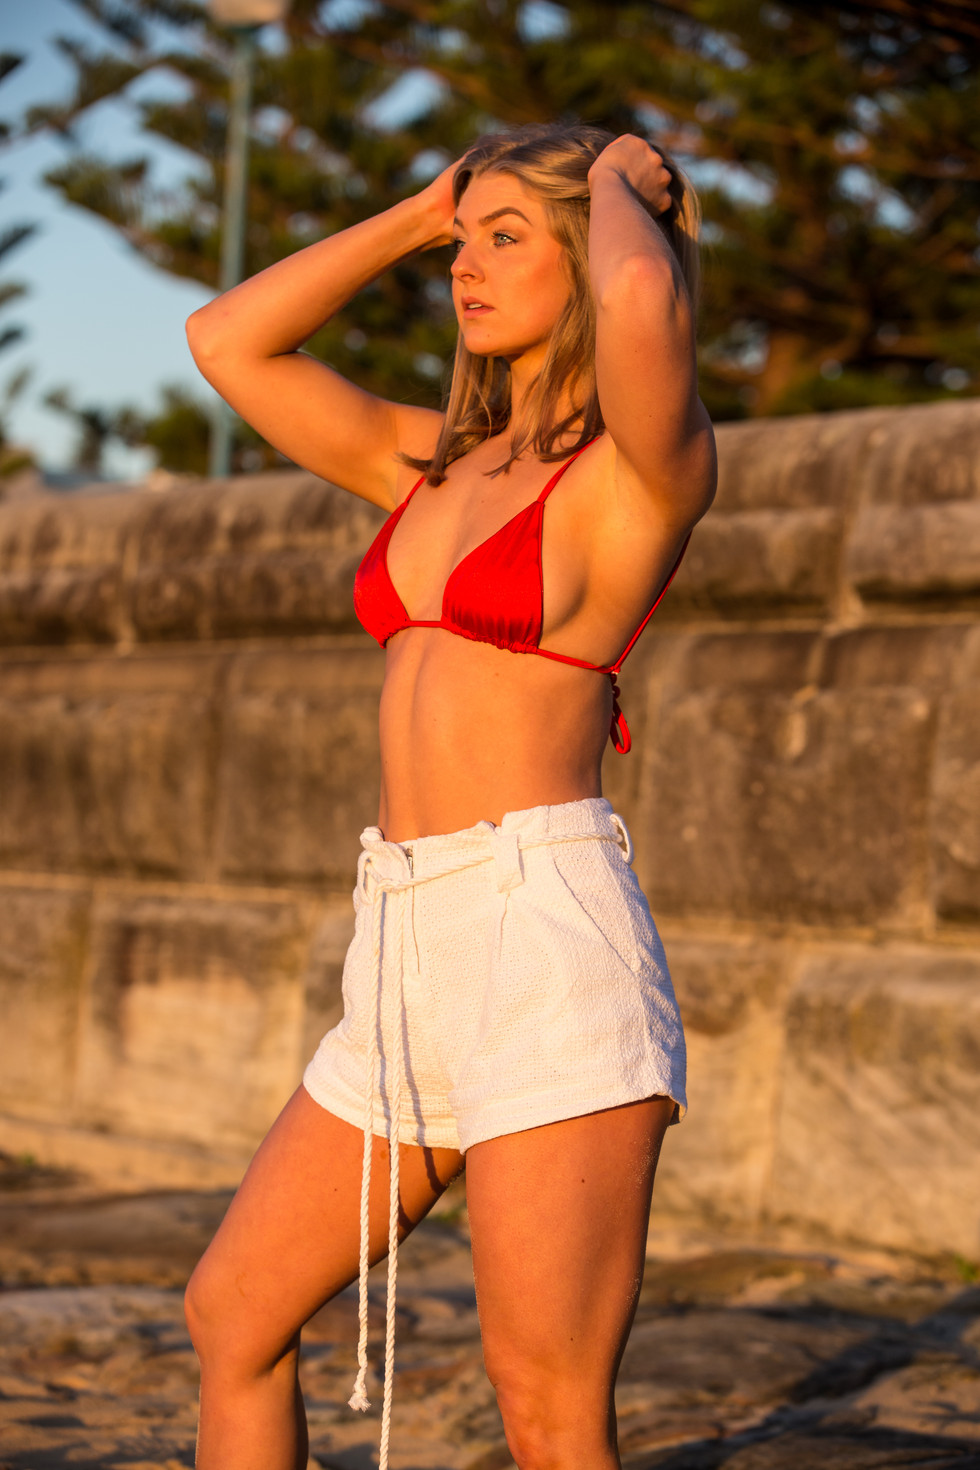 Felicia_by_CoogeePhotography-110111.jpg